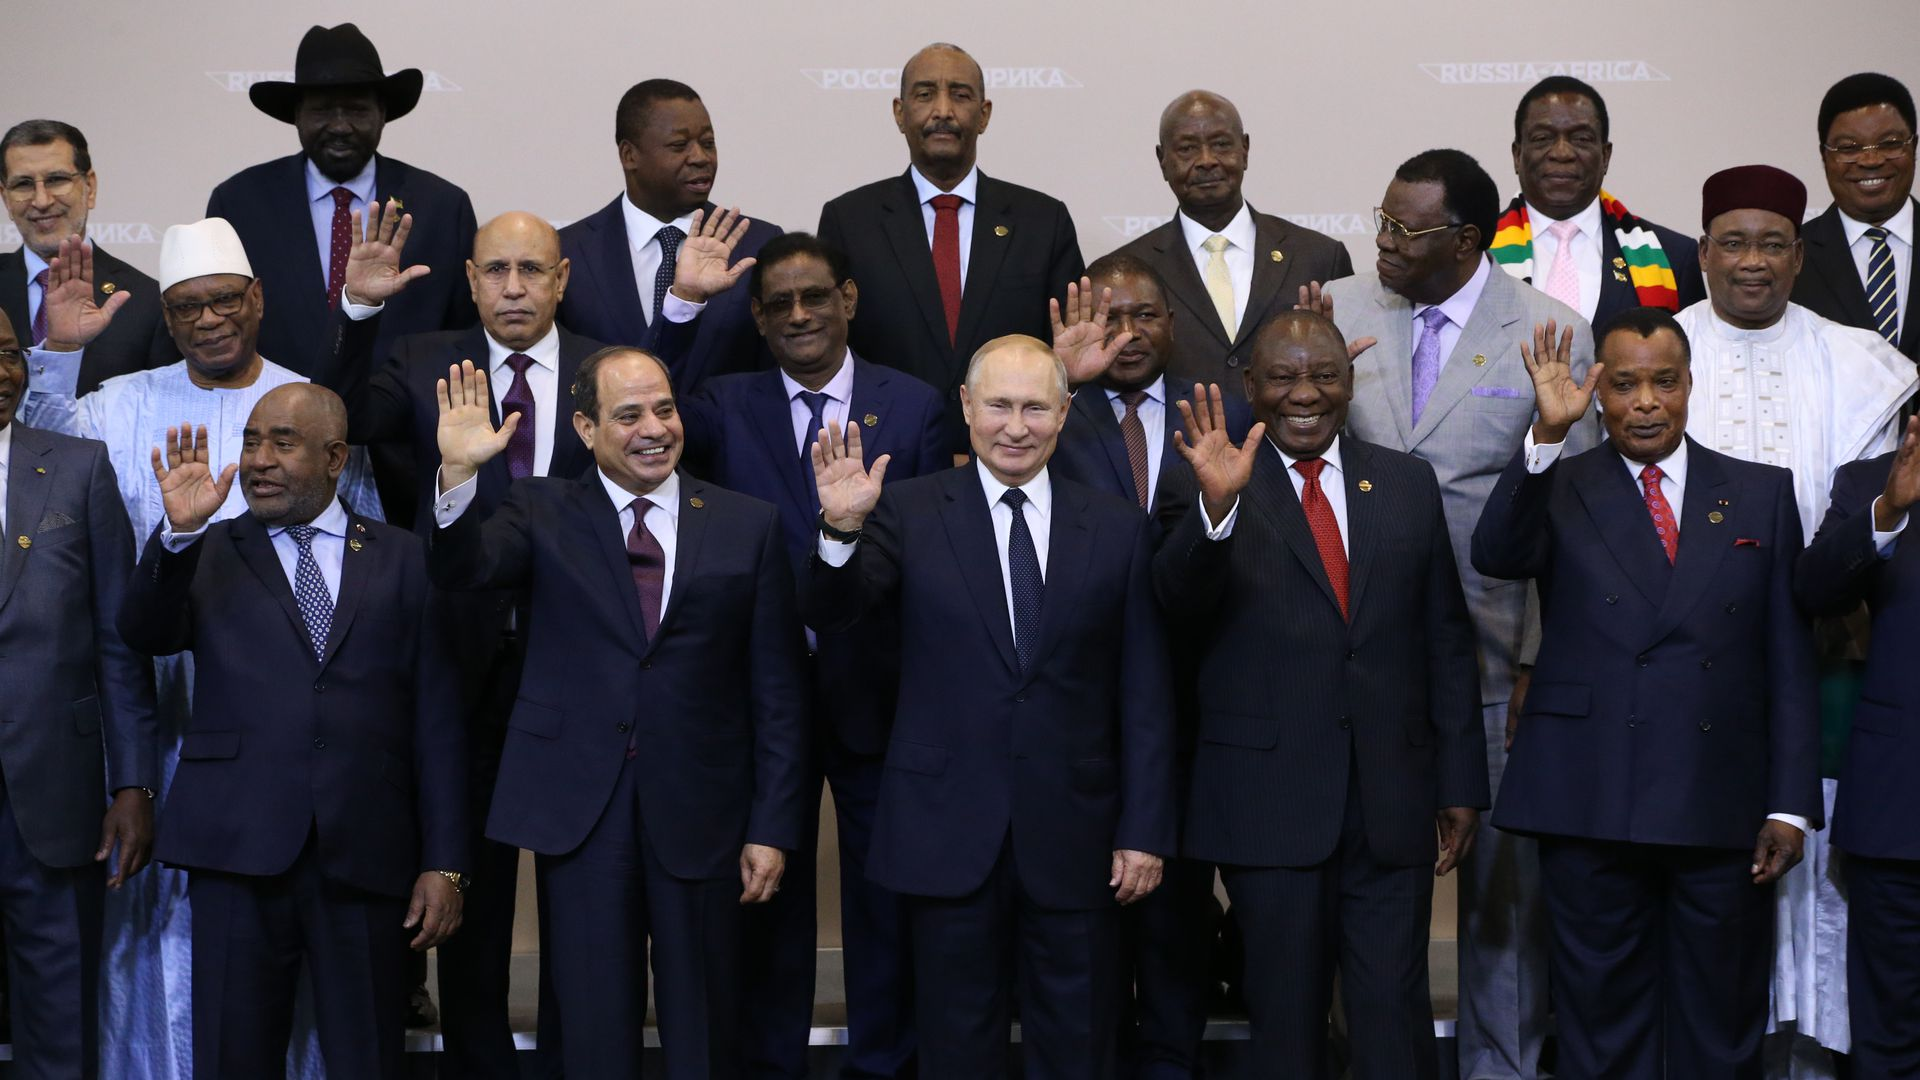 RUSSIA'S GROWING INFLUENCE IN AFRICA & ITS IMPLICATIONS.